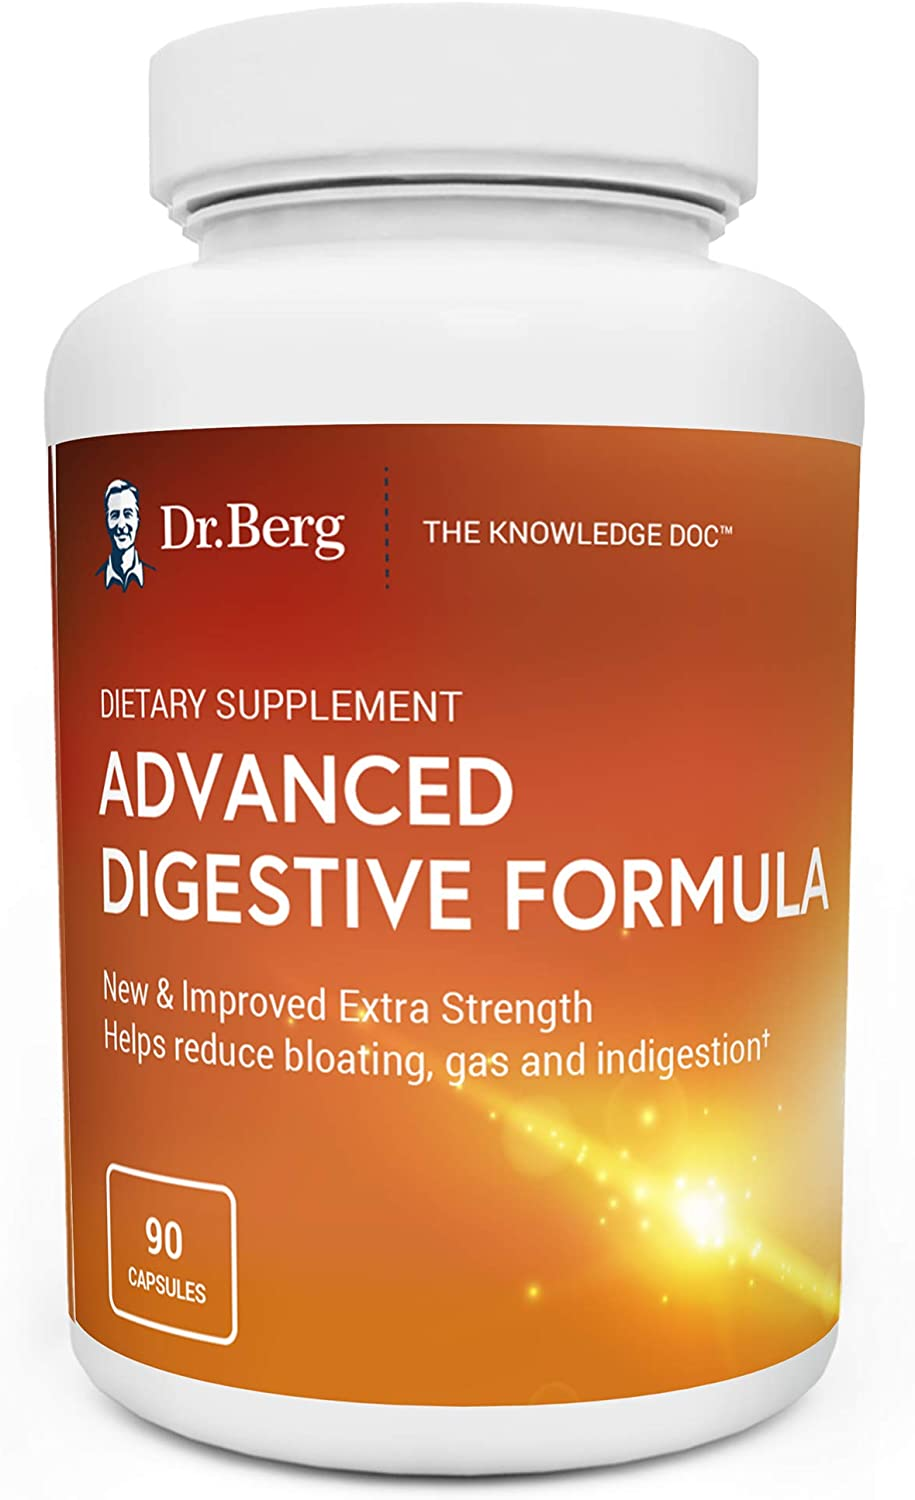 Dr. Berg's Advanced Digestive Formula Extra Strength - Contains Both Apple Cider Vinegar Powder + Betaine Hydrochloride - Helps Healthy Digestion, Helps Reduce Gas and Bloating - 90 Capsules